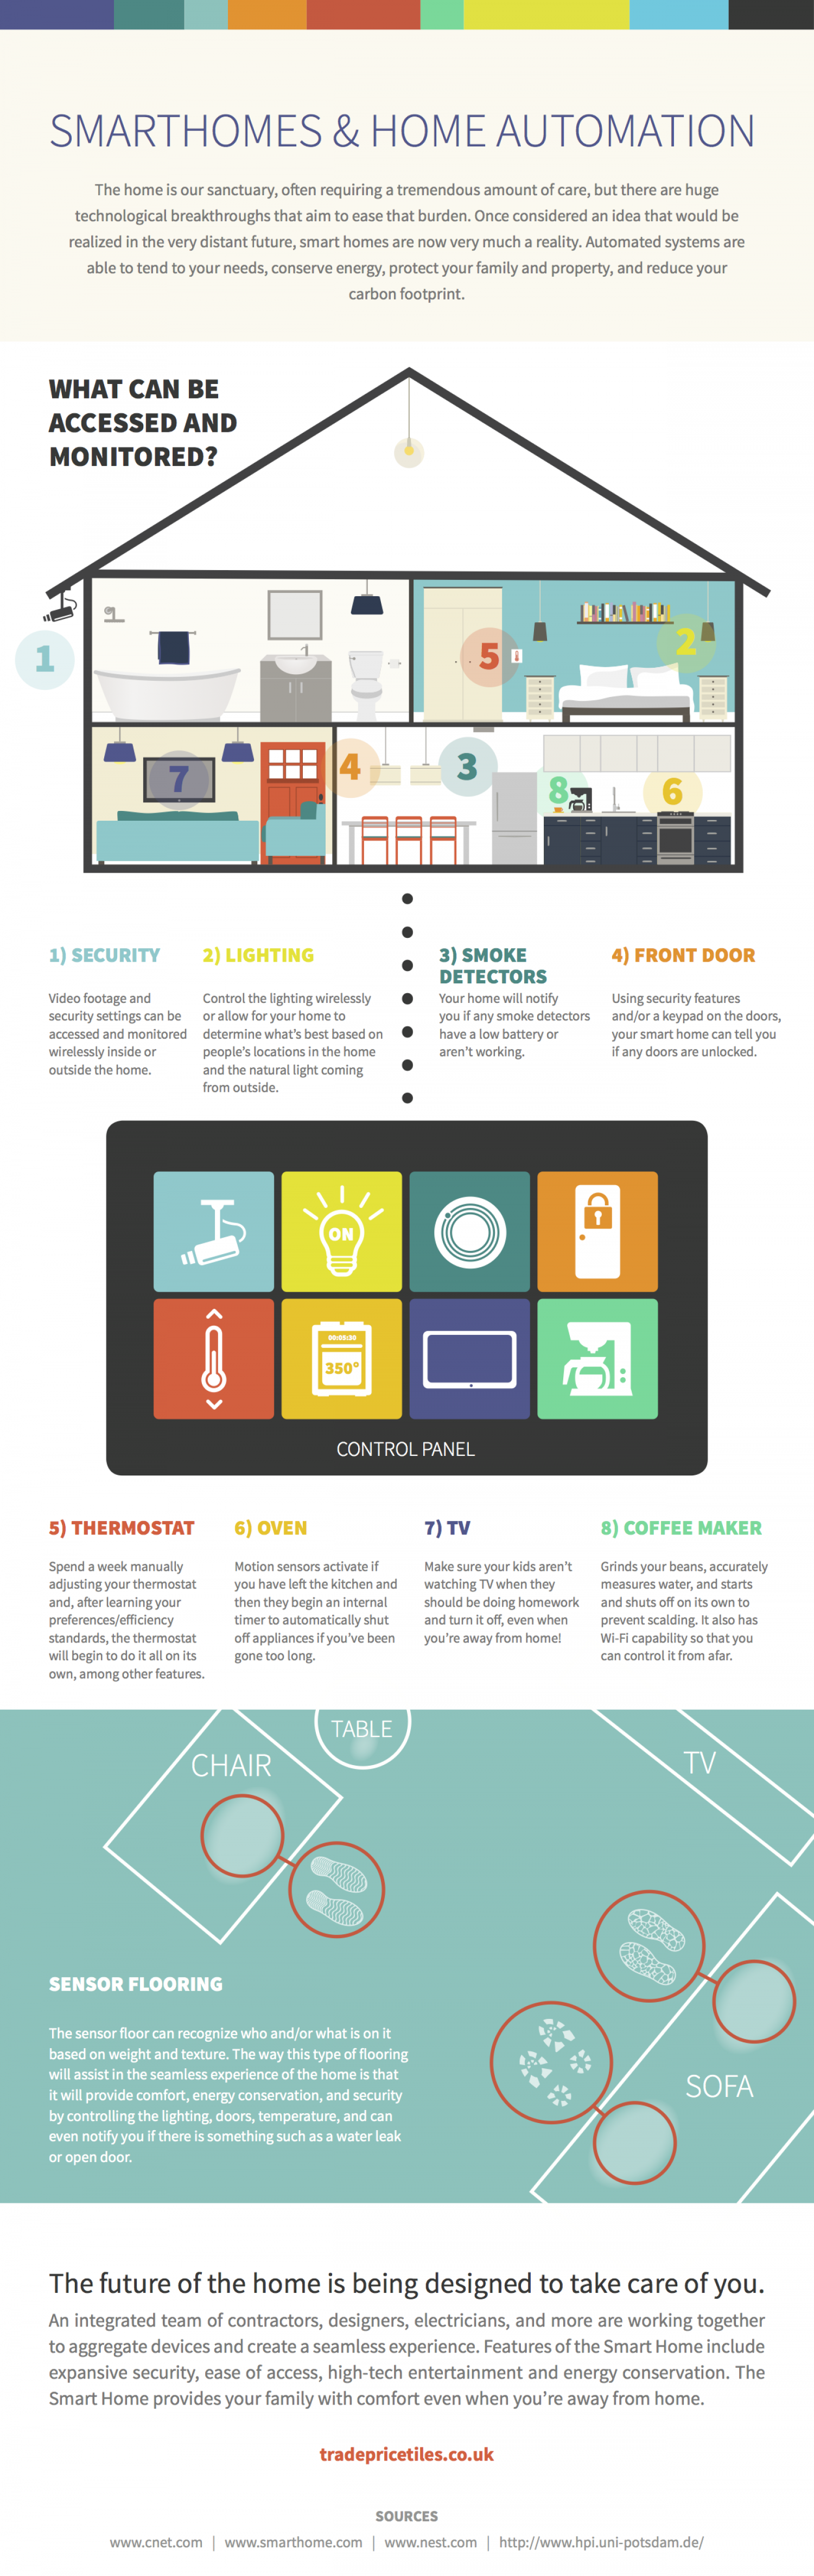 Smarthomes and Home Automation Infographic